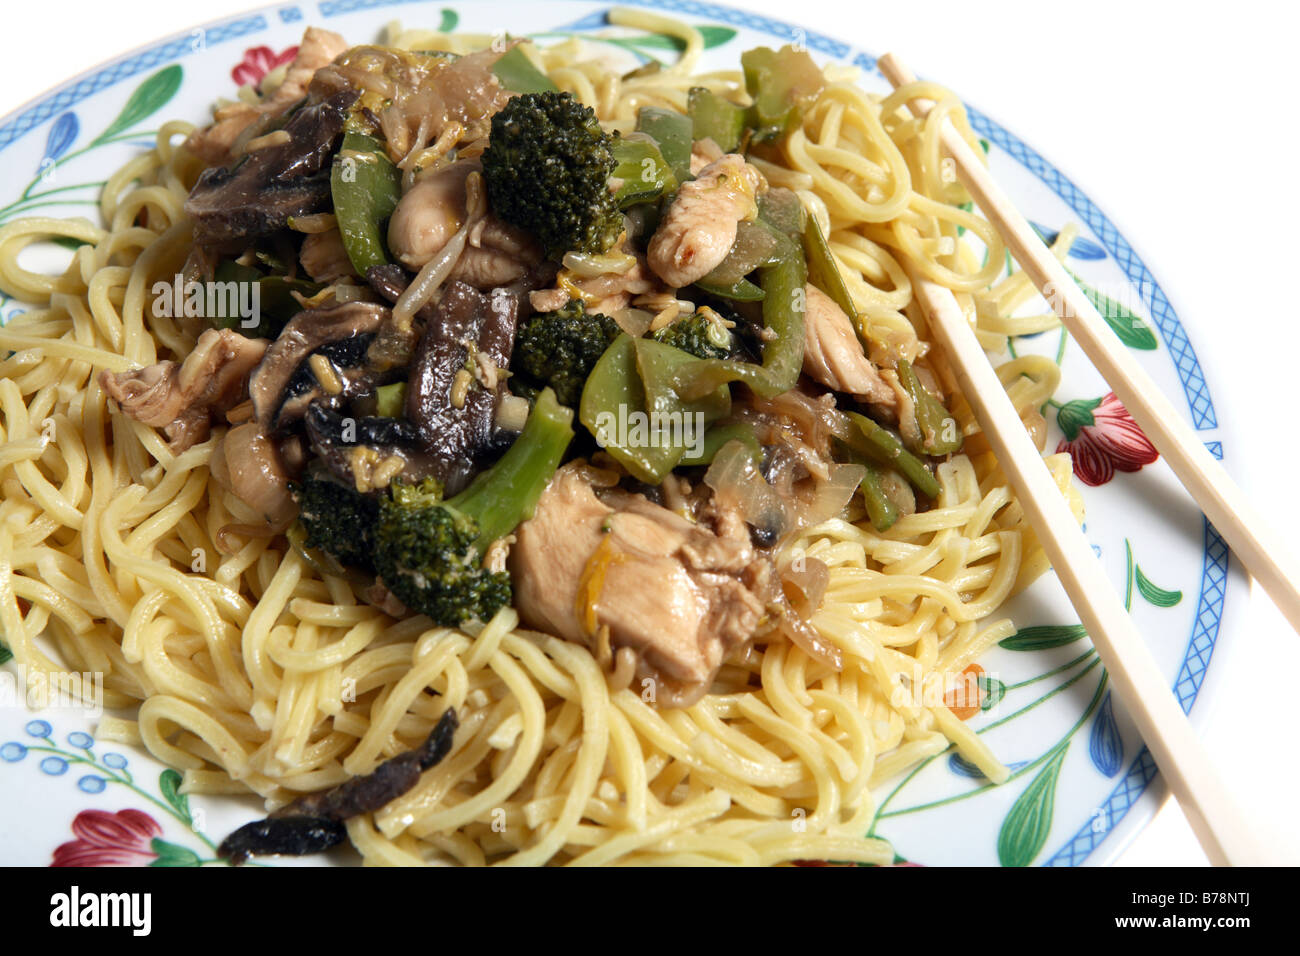 A Plate Of Chicken Chow Mein Cantonese Egg Noodles With Chopsticks